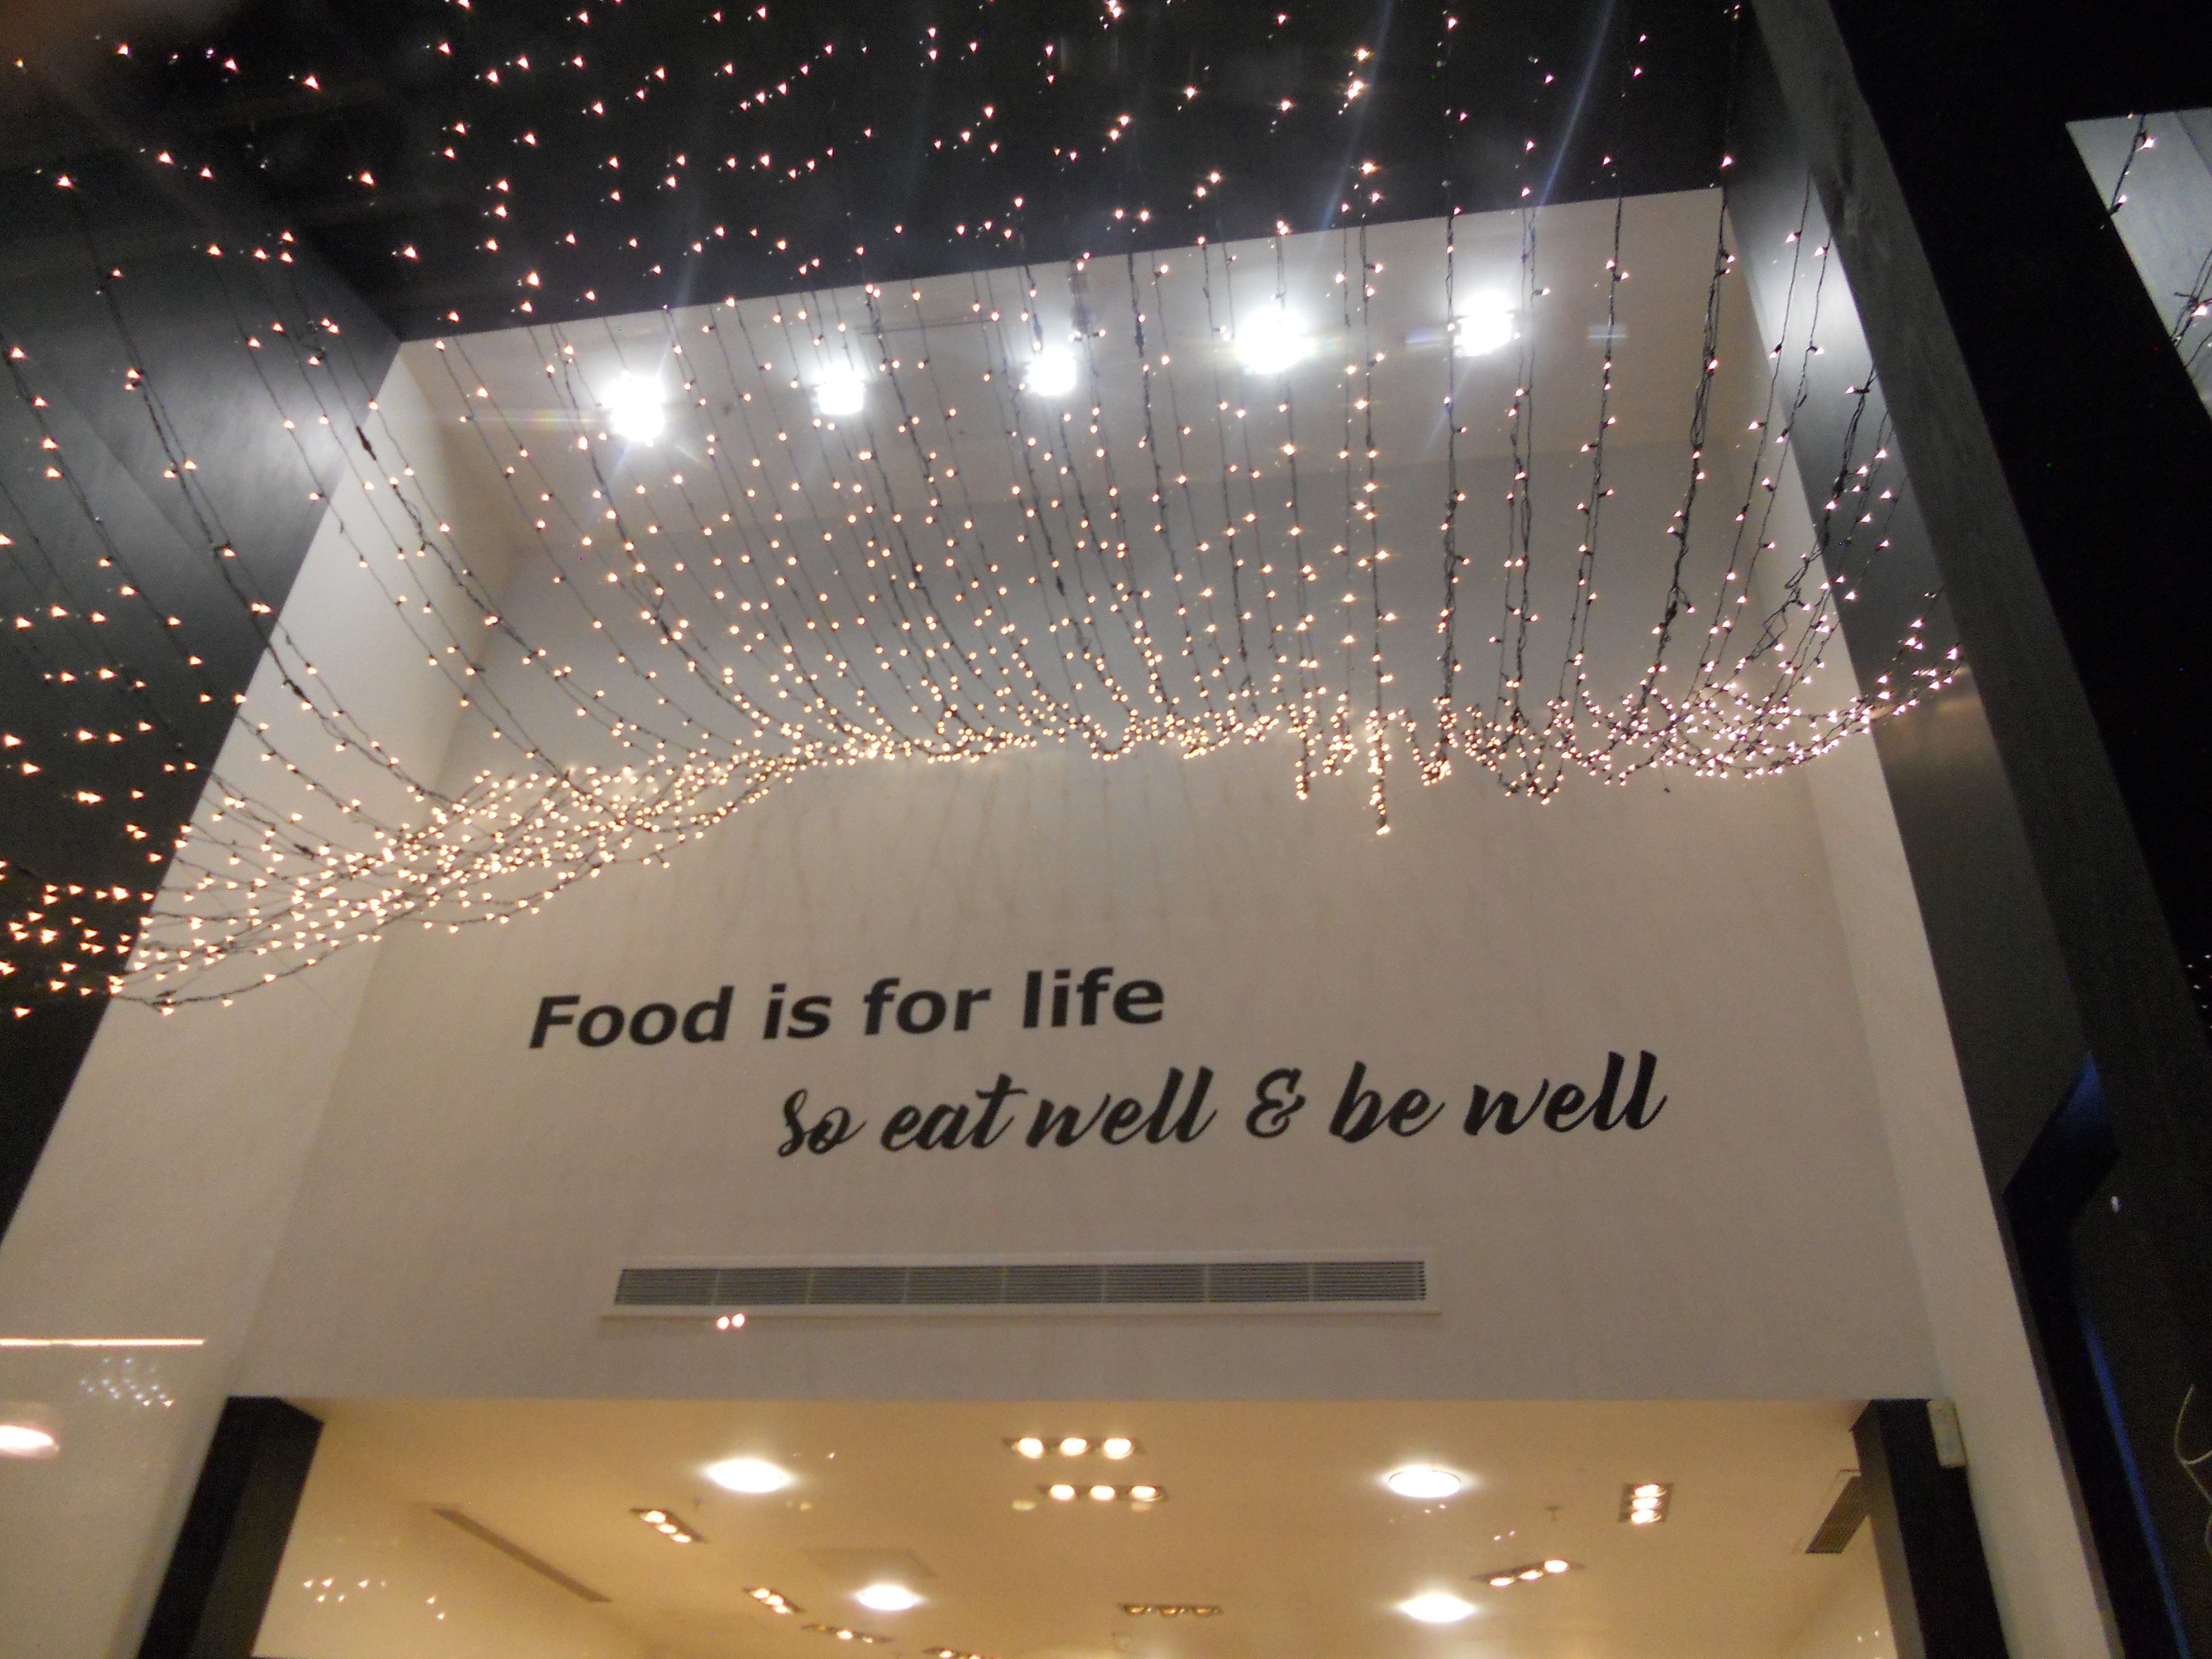 ikea-home-cooking-food-is-for-life